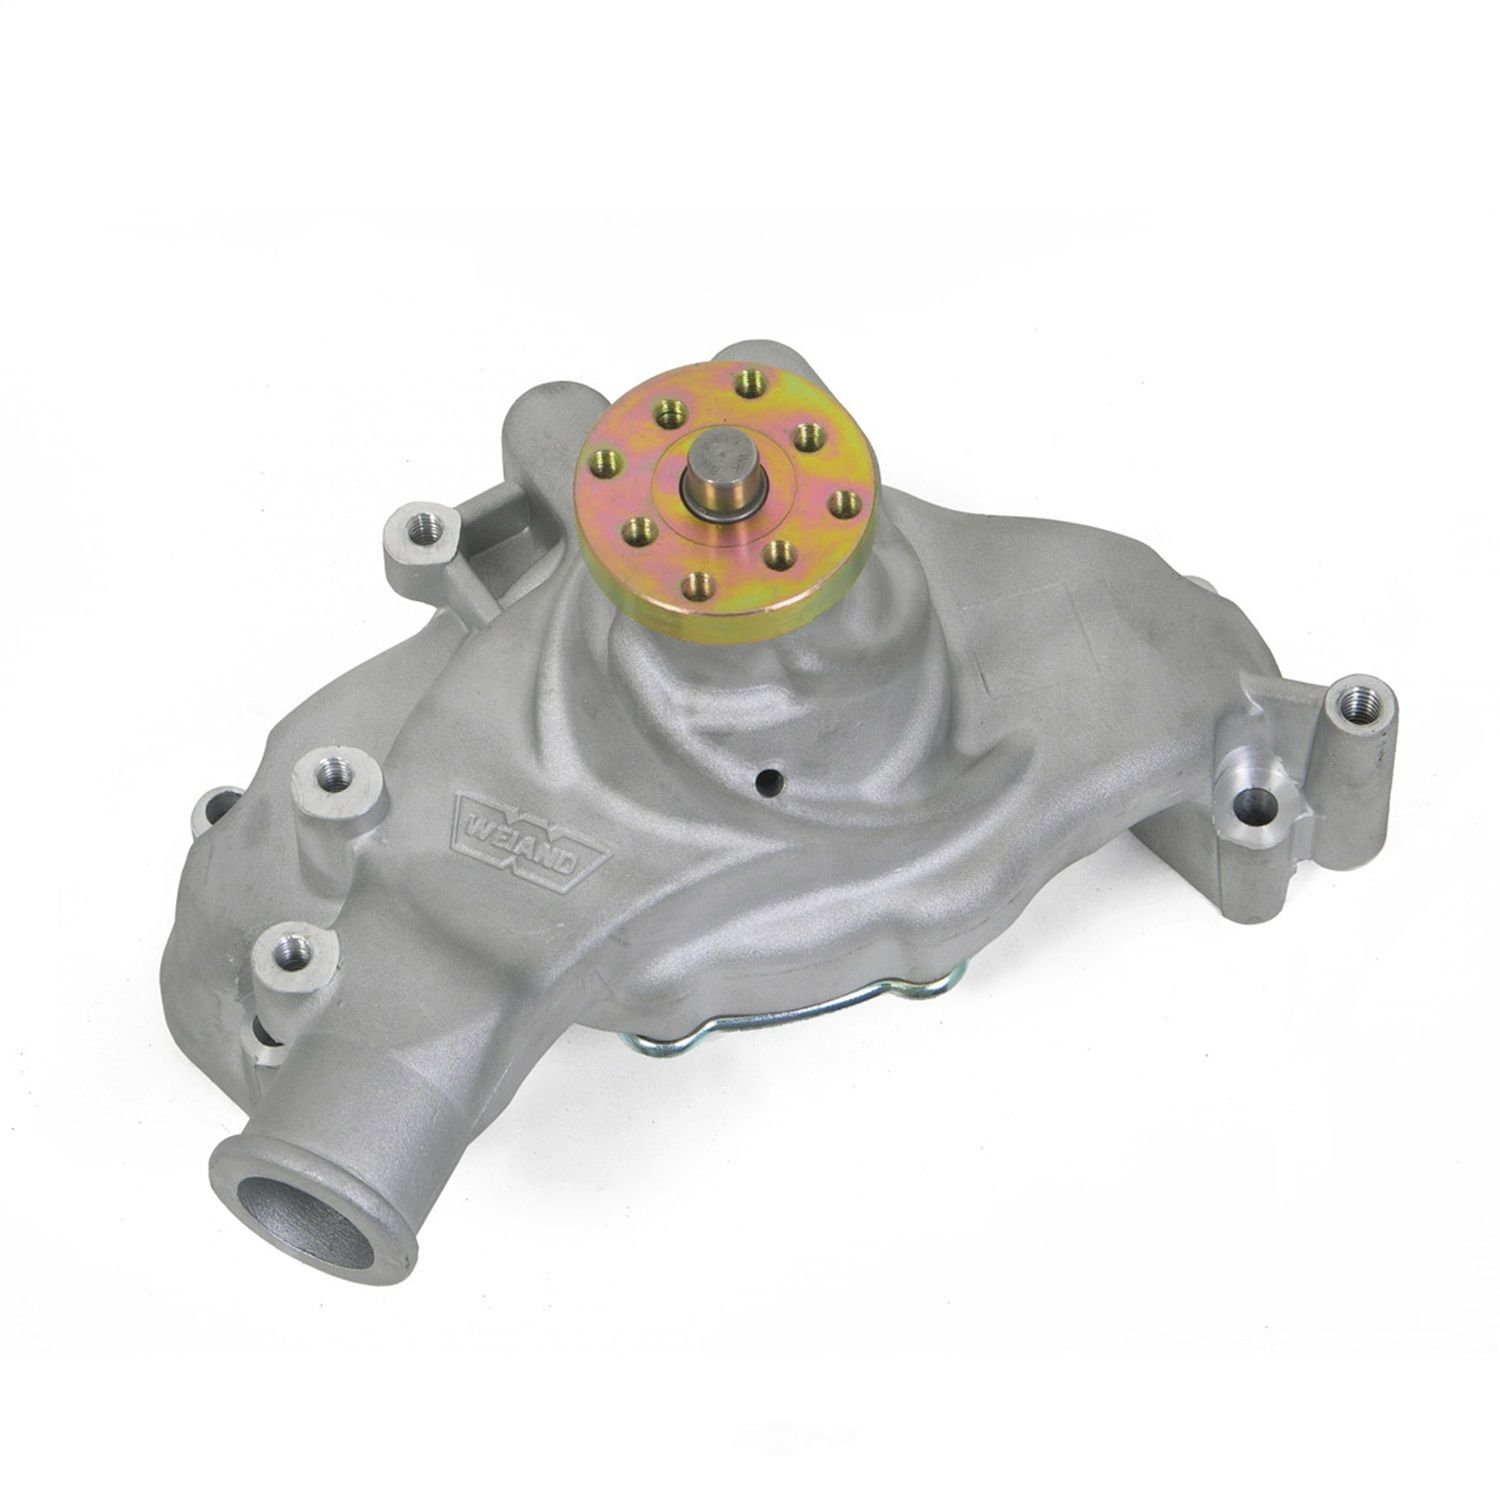 WEIAND - Action +Plus Water Pump - WEI 9242